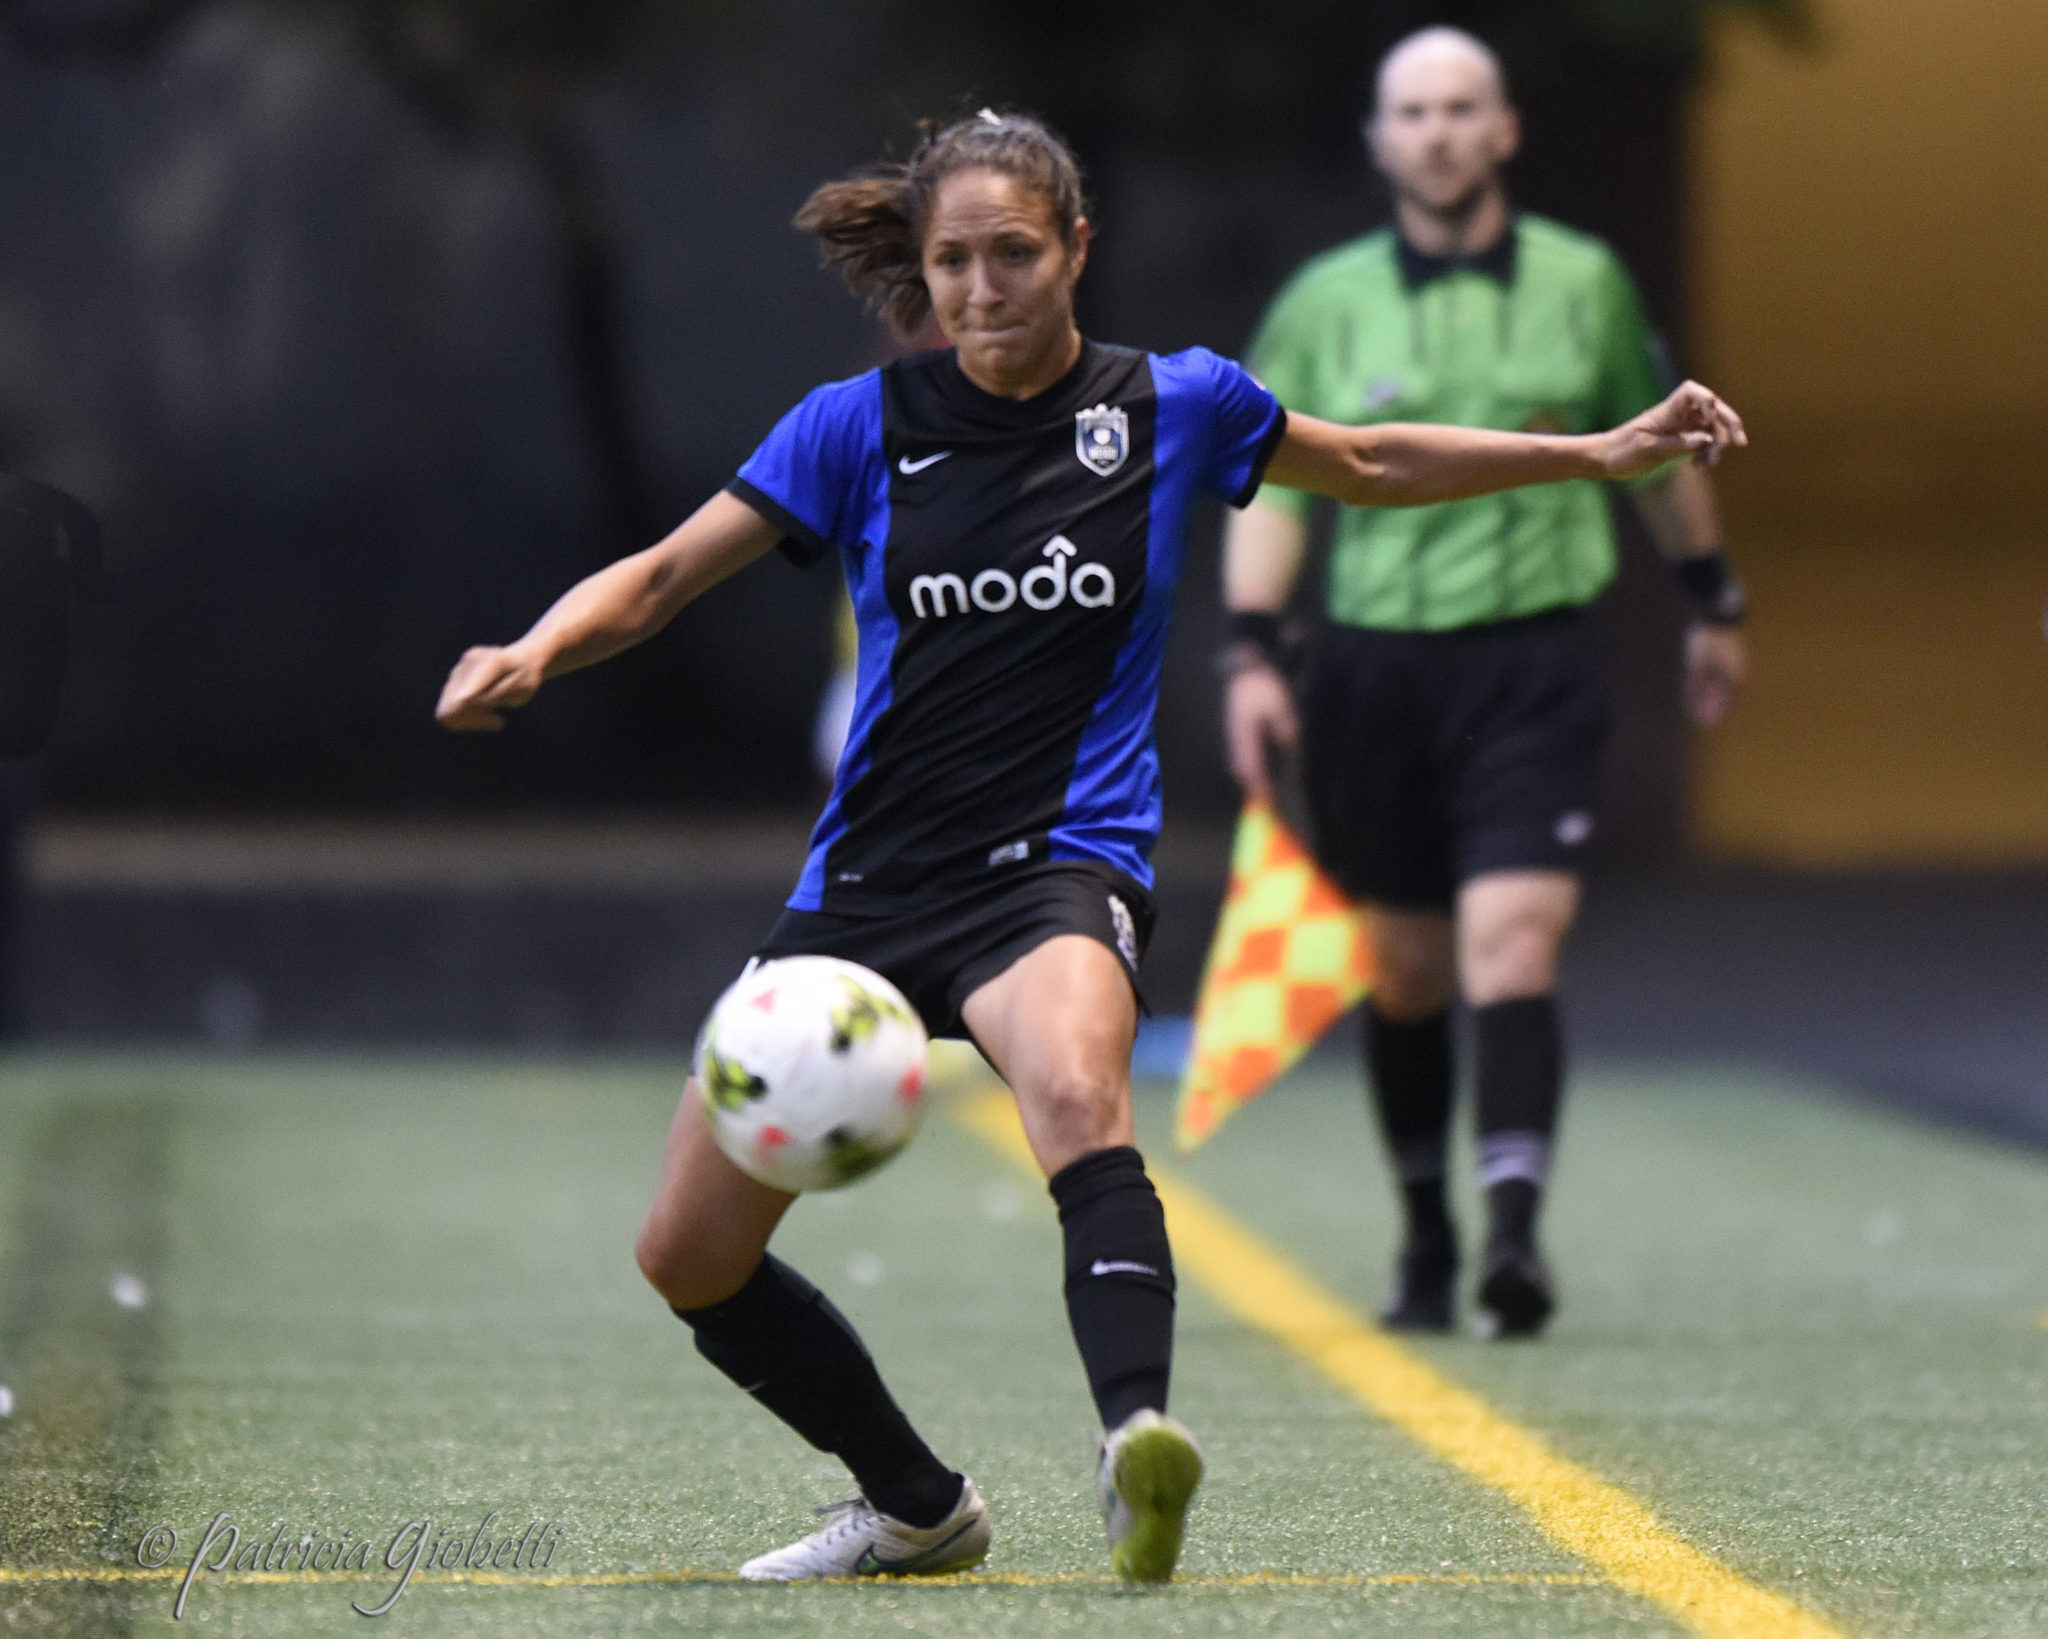 Seattle Reign FC defender Stephanie Cox has retired from professional soccer. (Photo Copyright Patricia Giobetti for The Equalizer)